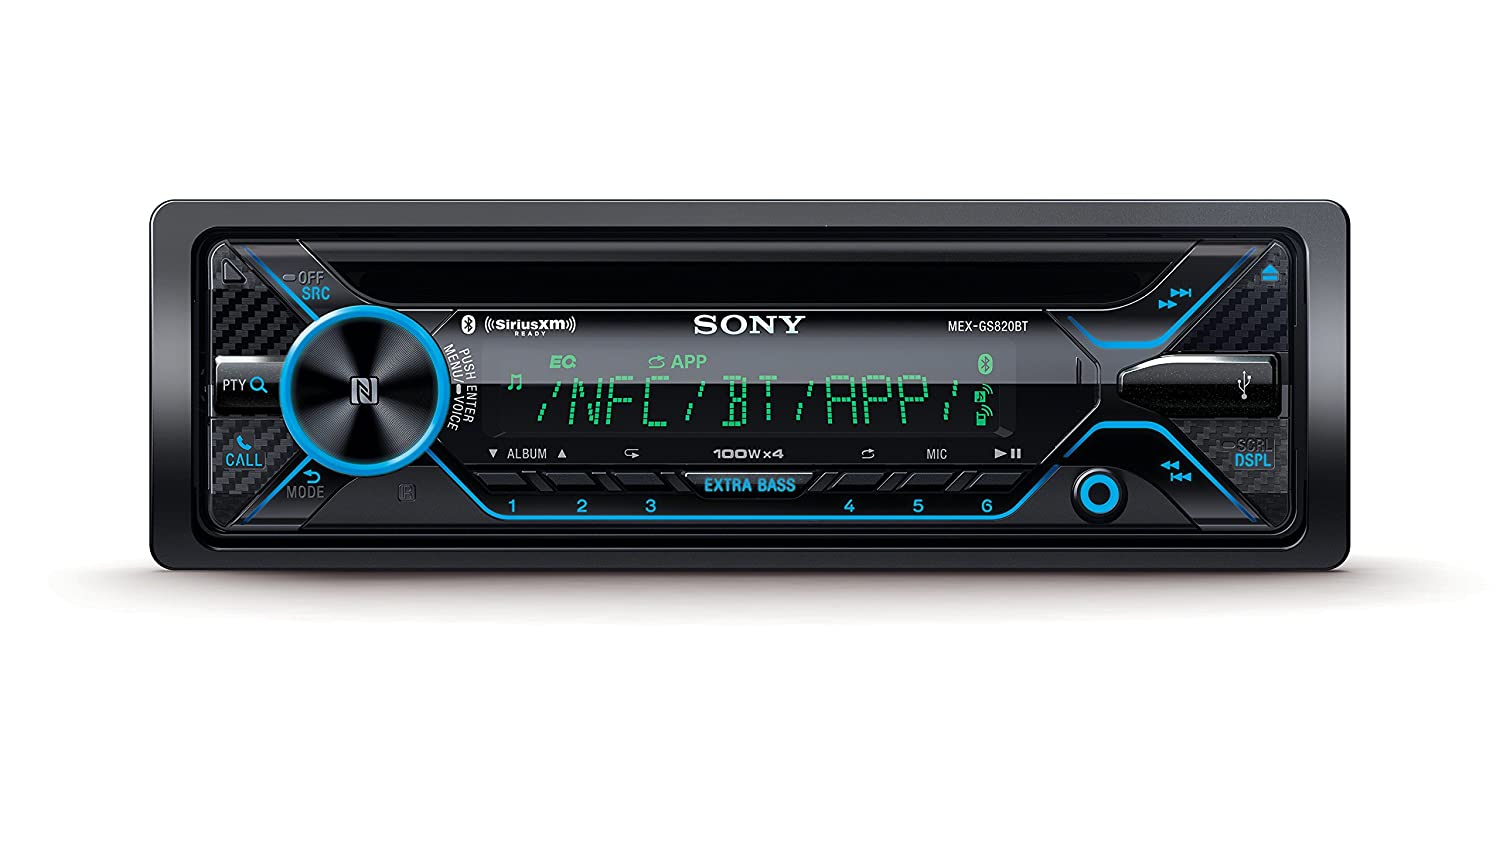 Dual BT Sony MEXGS820BT GS Variable Color 160W Hi-Power EQ10 Dual AUX 3 Pre 5V Sxm NFC Dual USB Aoa 2.0 Extrabass Songpal